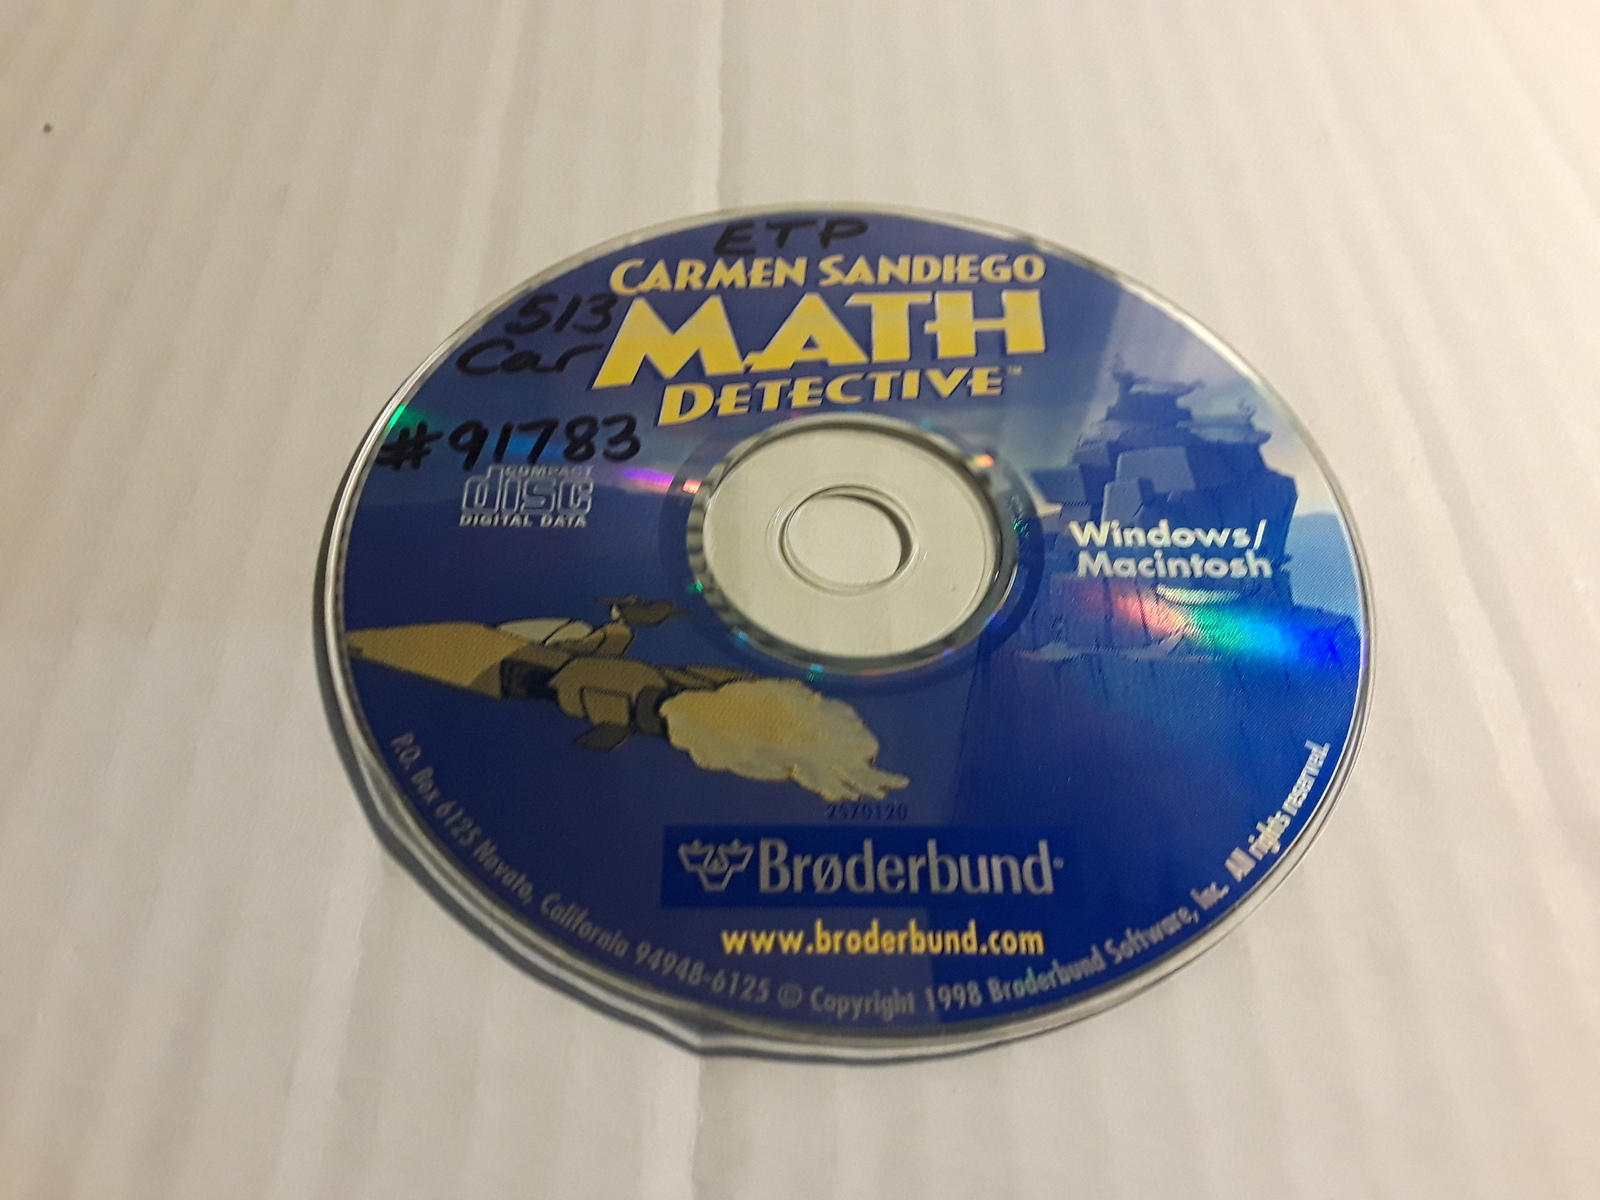 Primary image for CARMEN SANDIEGO MATH DETECTIVE CD